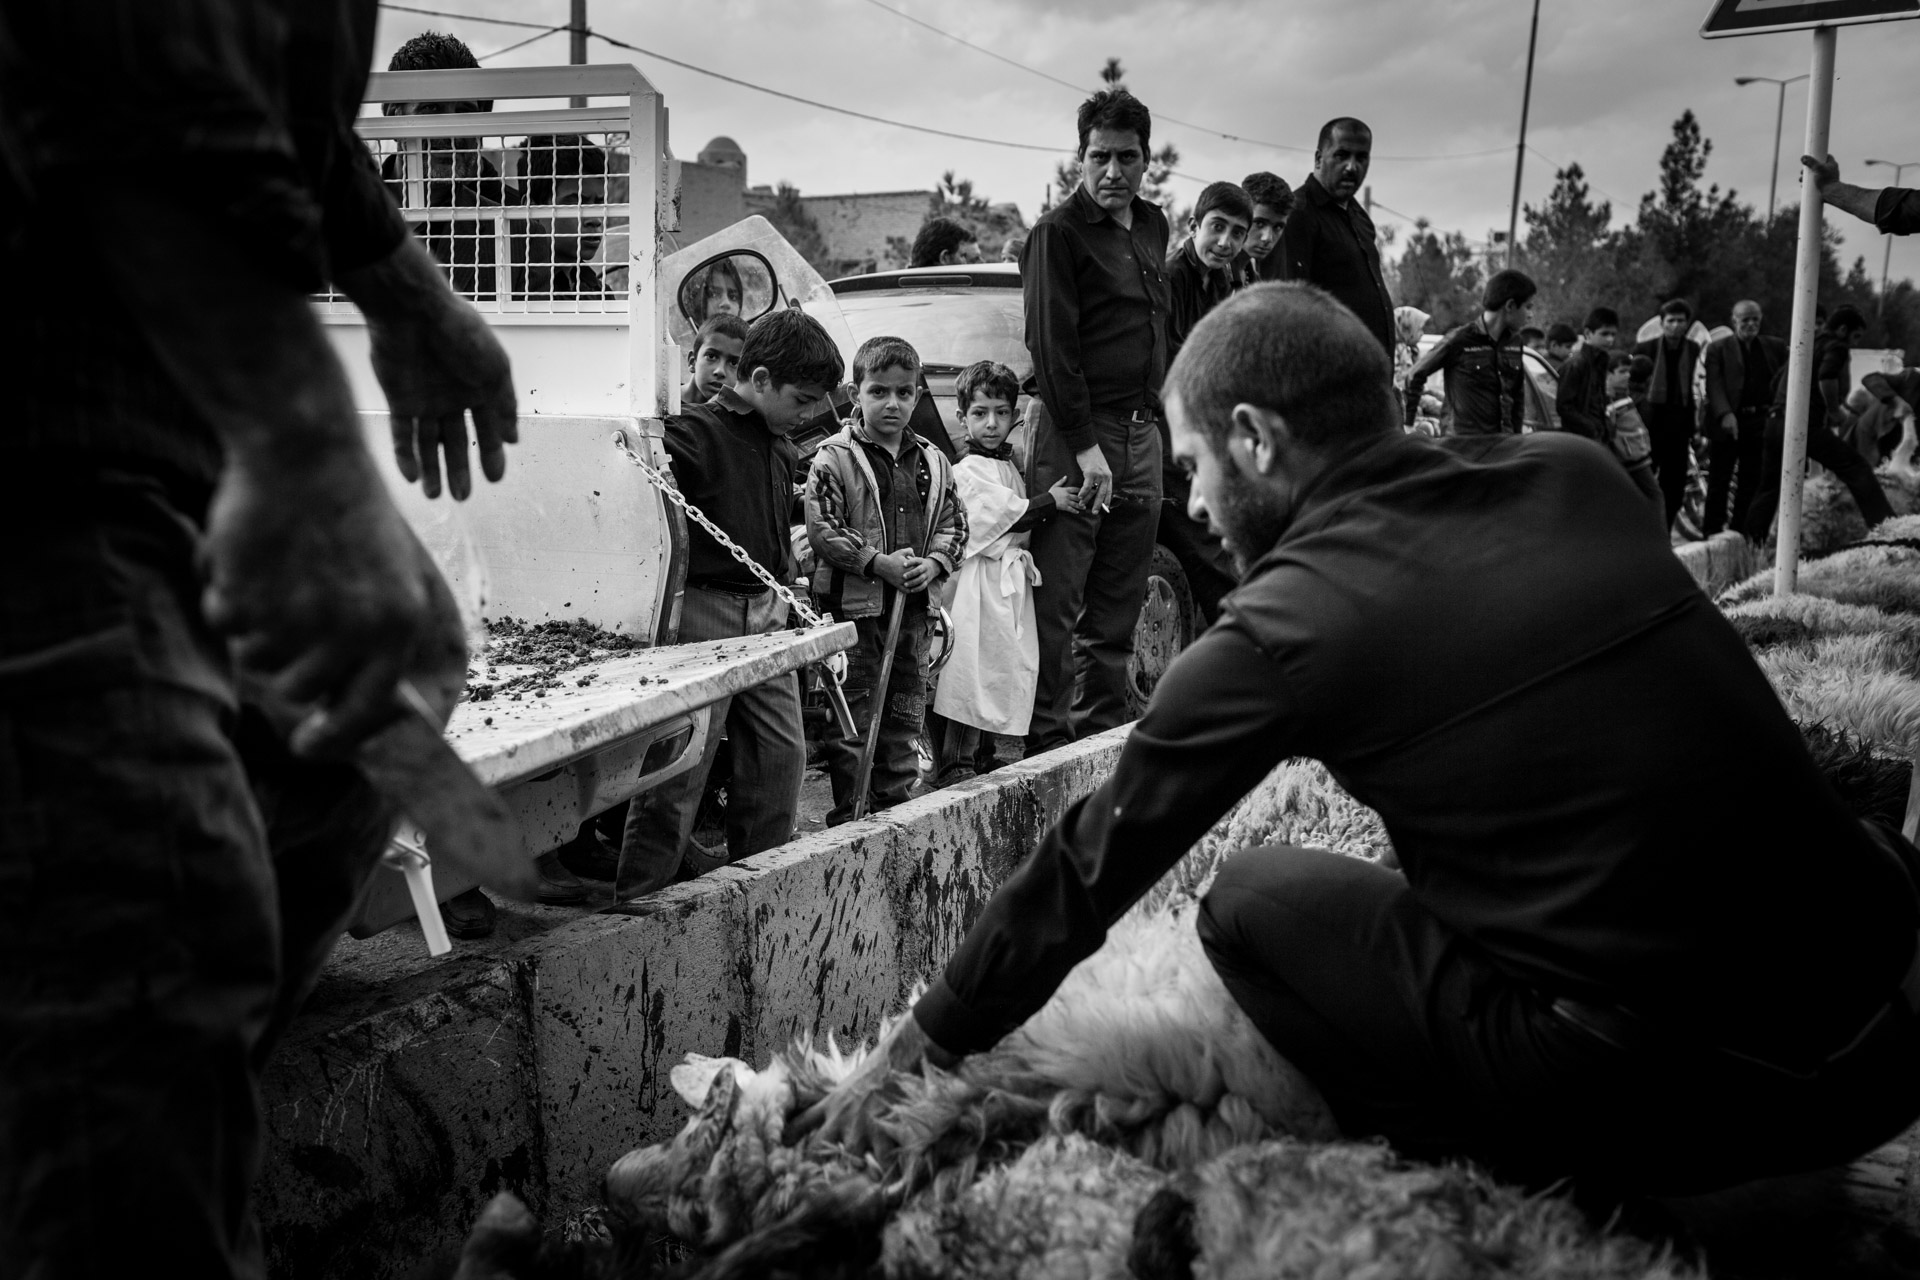 A small boy squeezes the hand of his father, while a man is busy slaughtering sheep on the sidewalk. The meat will be processed and distributed as free Kebab to the people right afterwards.